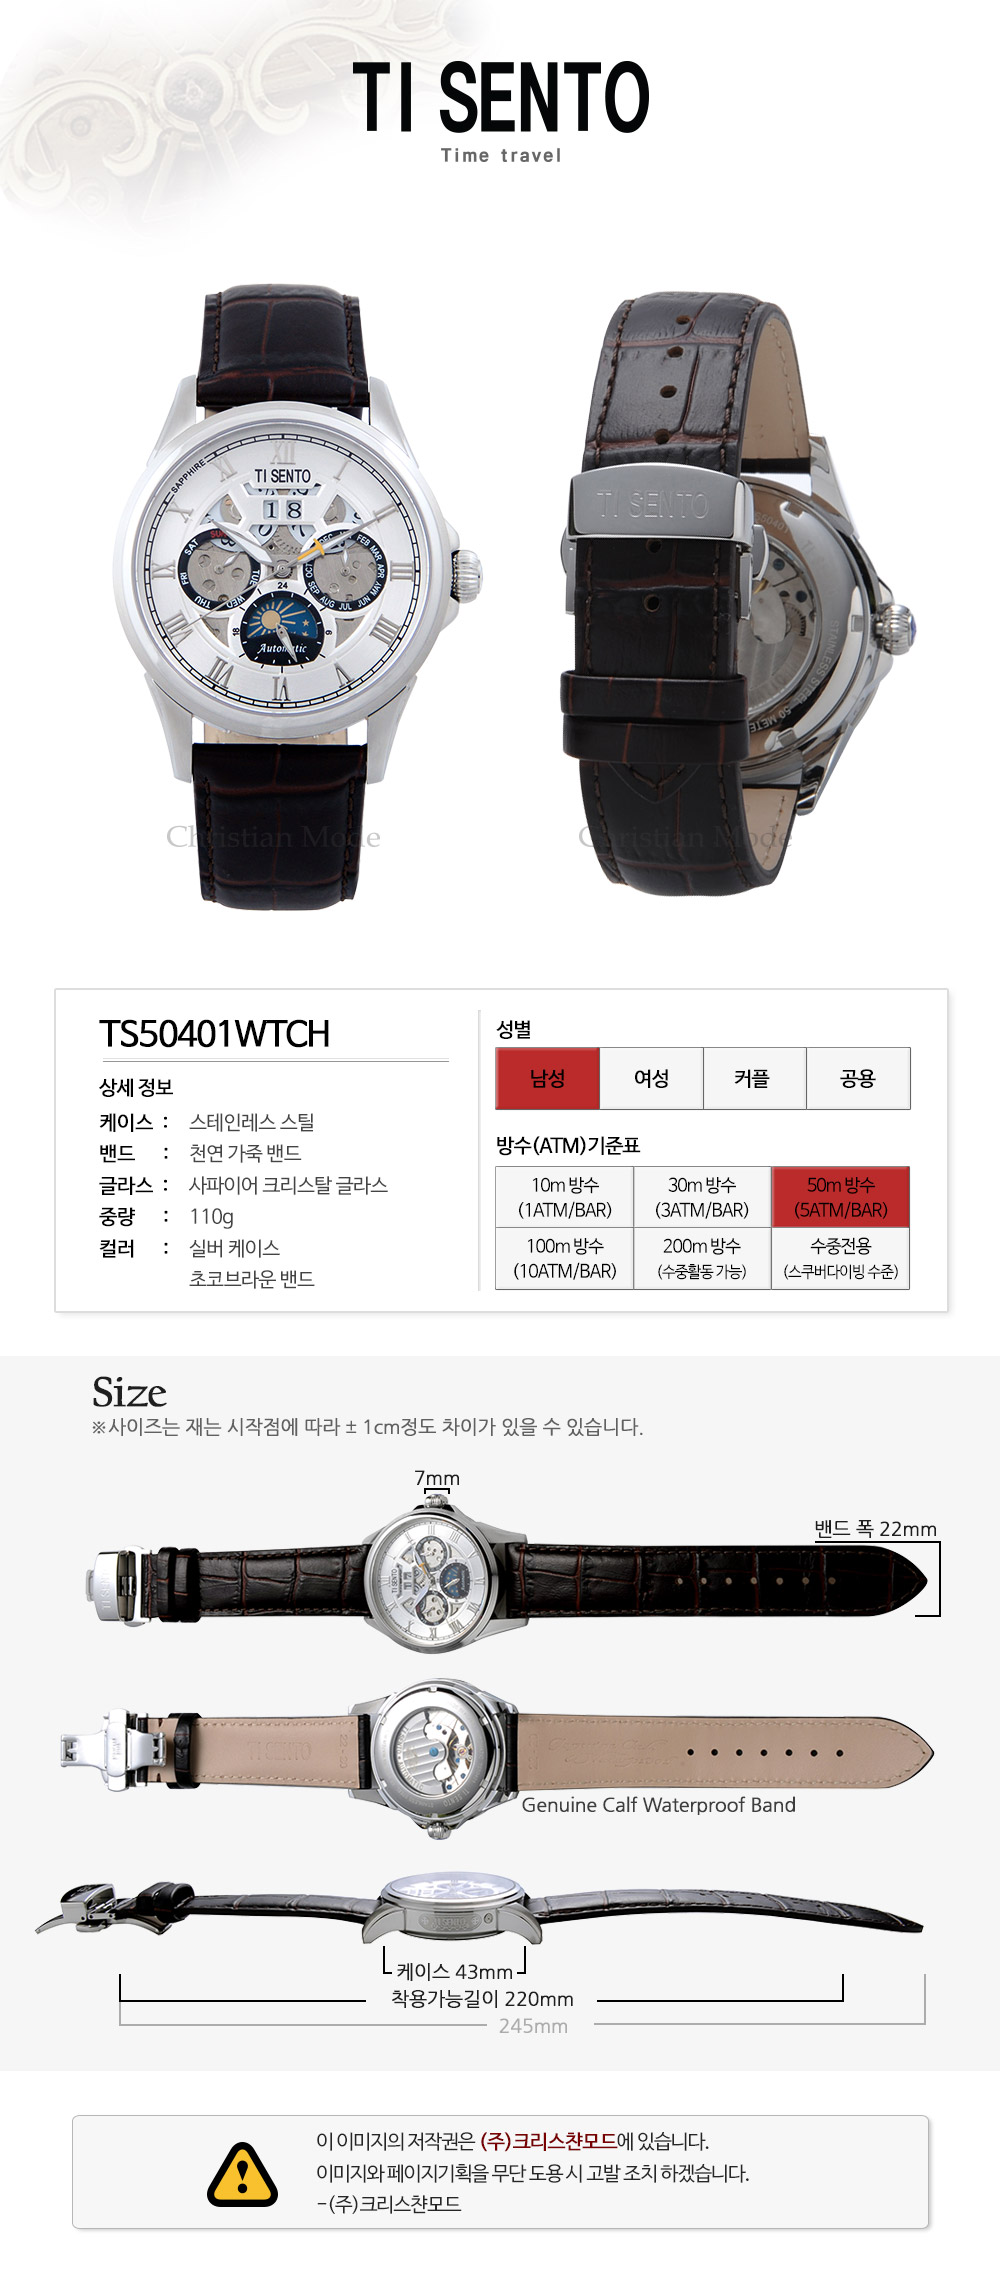 [ TISENTO ] KOREA MADE HIGH QUALITY AUTOMATIC MECHANICAL GENUINE CALF WATERPROOF LEATHER STRAP WATCH TS 50401 WTCH